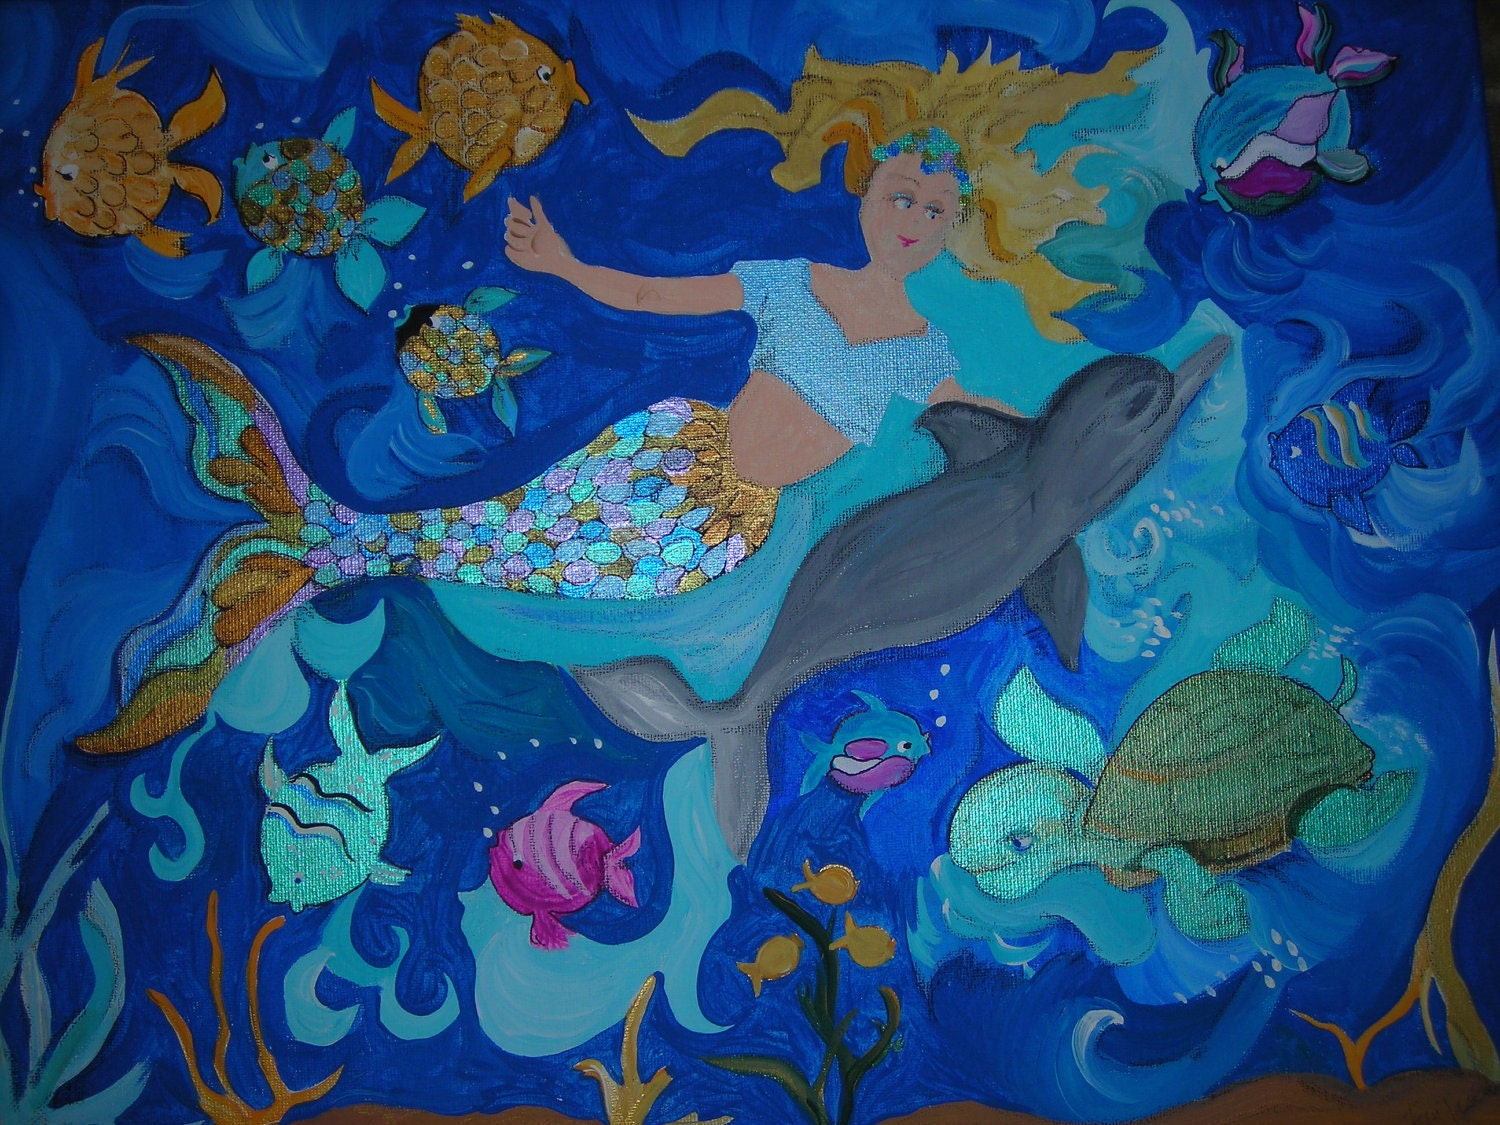 Mermaid Wall Art 20 x 16 Original Acrylic Children Painting  Kids wall art of The Mermaid and the Dolphin